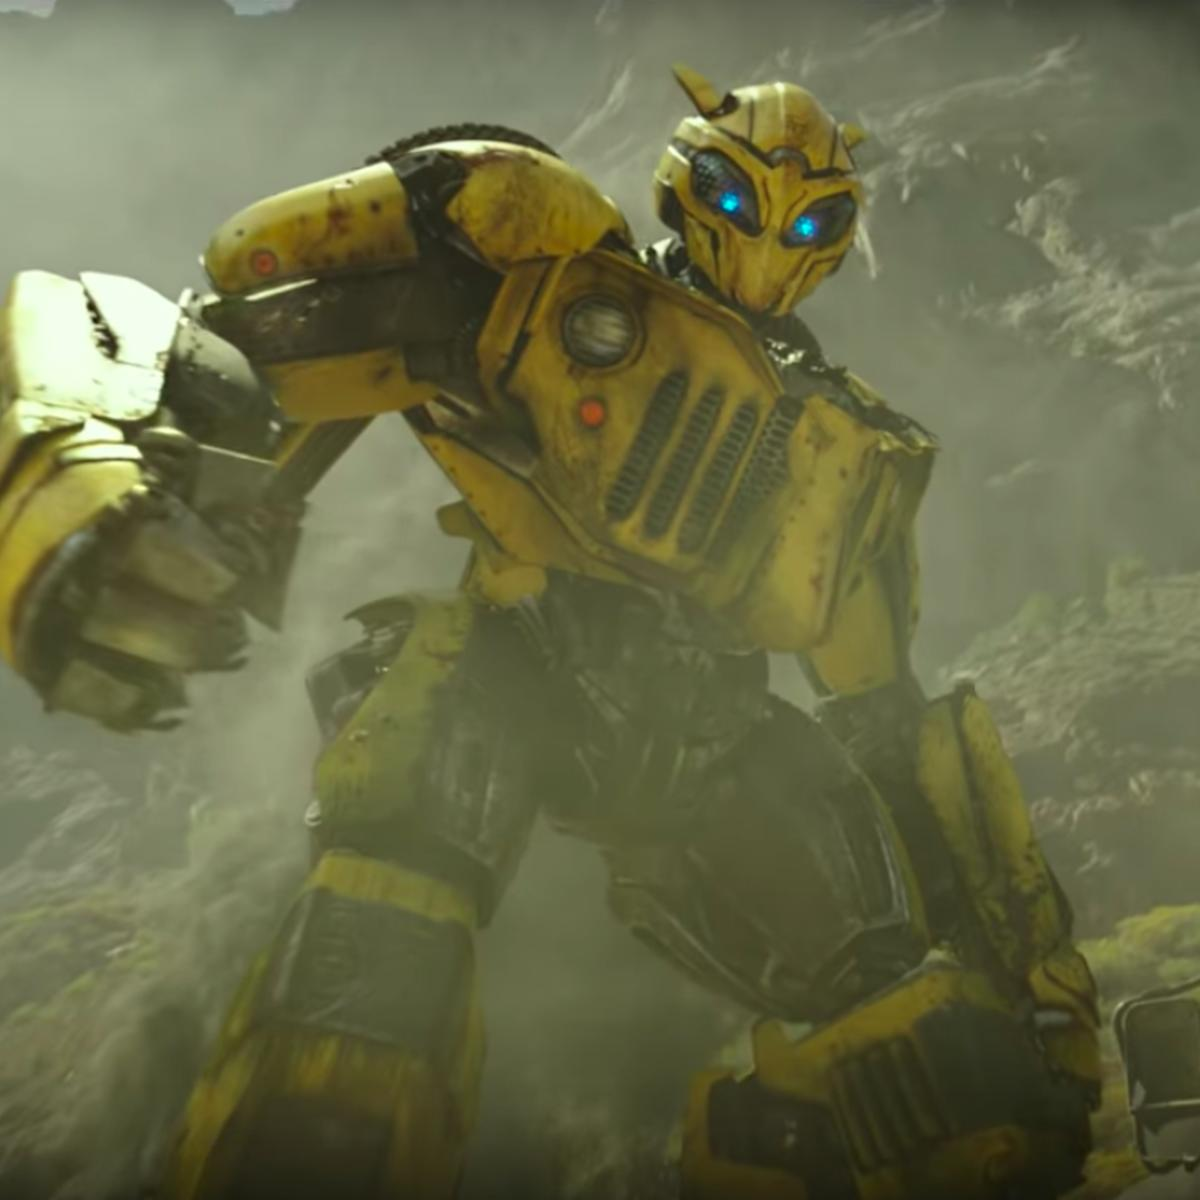 John Cena Goes One-on-One with Transformers in the Latest 'Bumblebee' Trailer